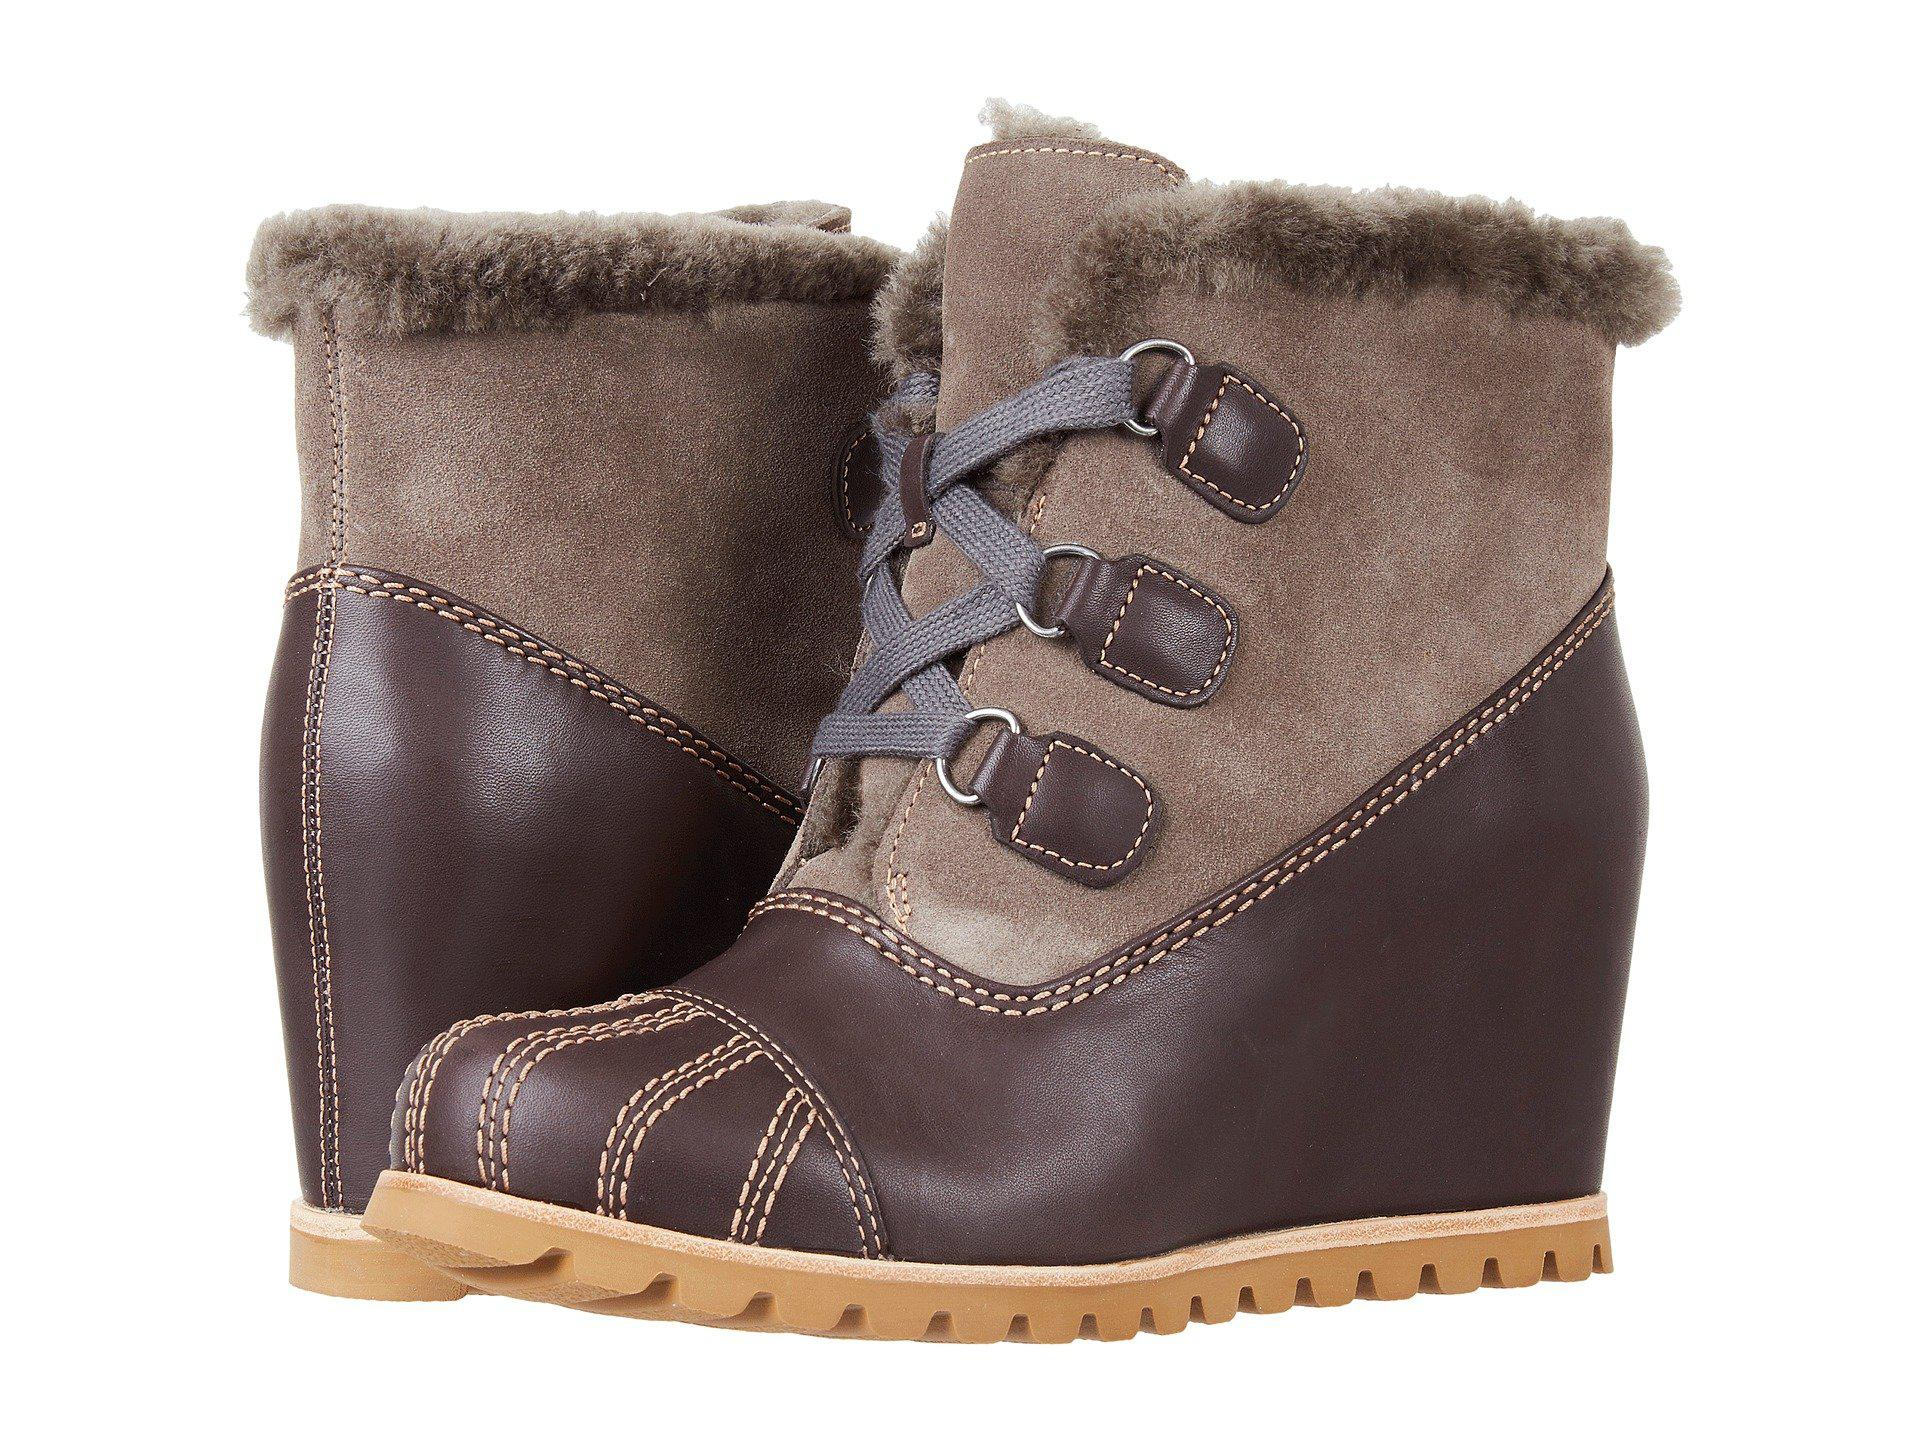 8dfc84f7bad Lyst - UGG Alasdair Waterproof (slate) Women s Boots in Brown